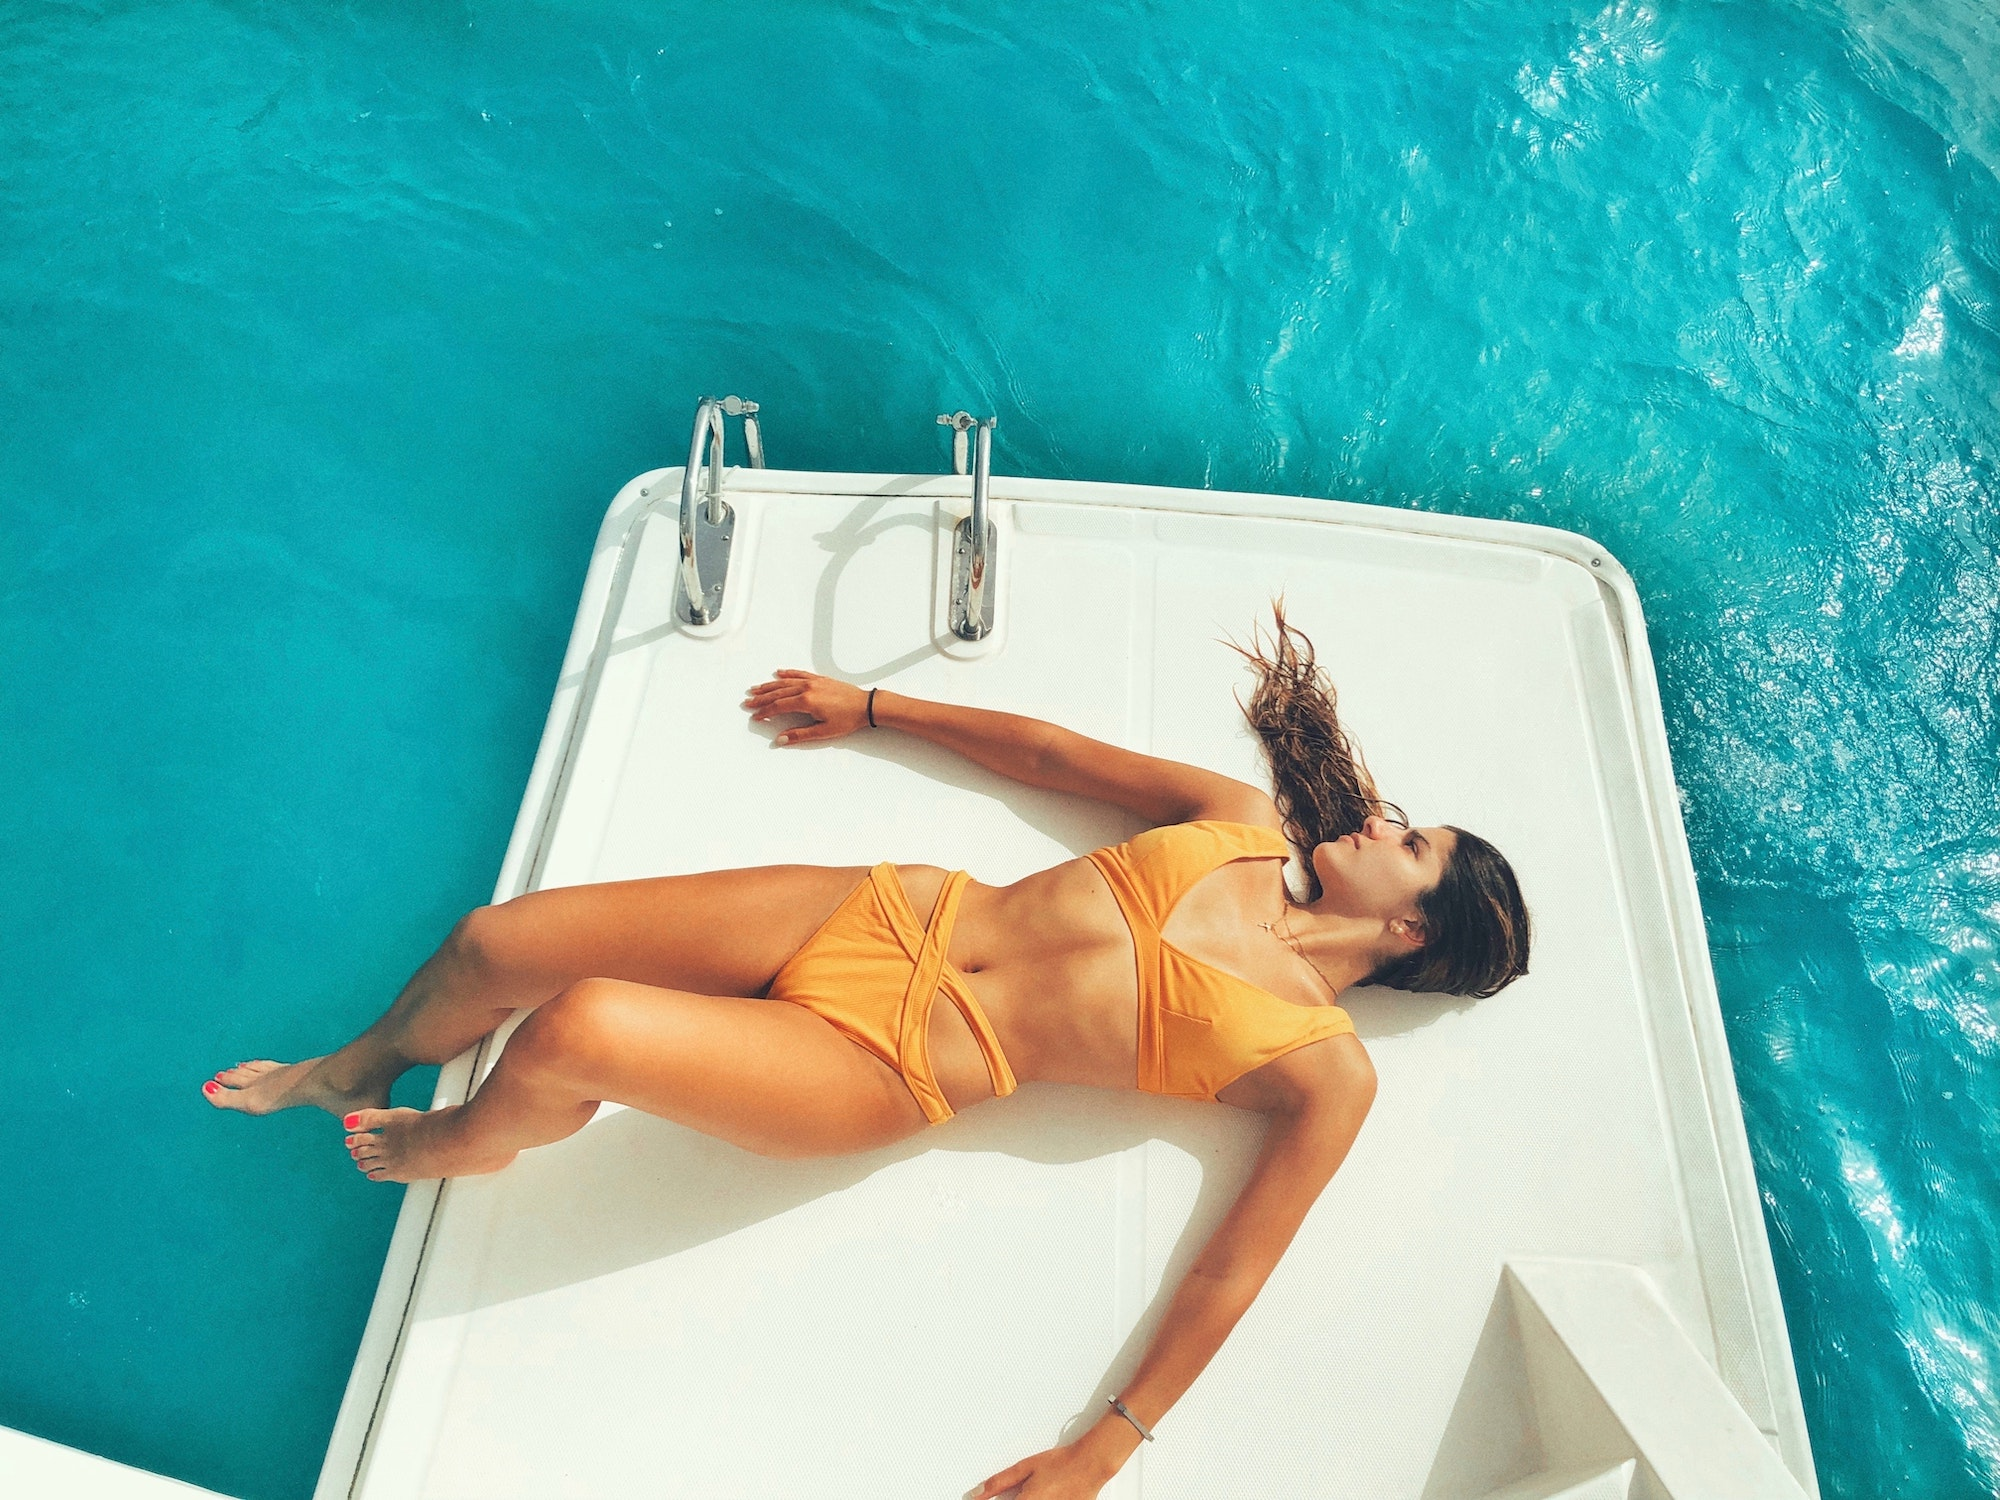 Why you should have laser hair removal to get rid of body hair | Beauty tips | Elle Blonde Luxury Lifestyle Destination Blog